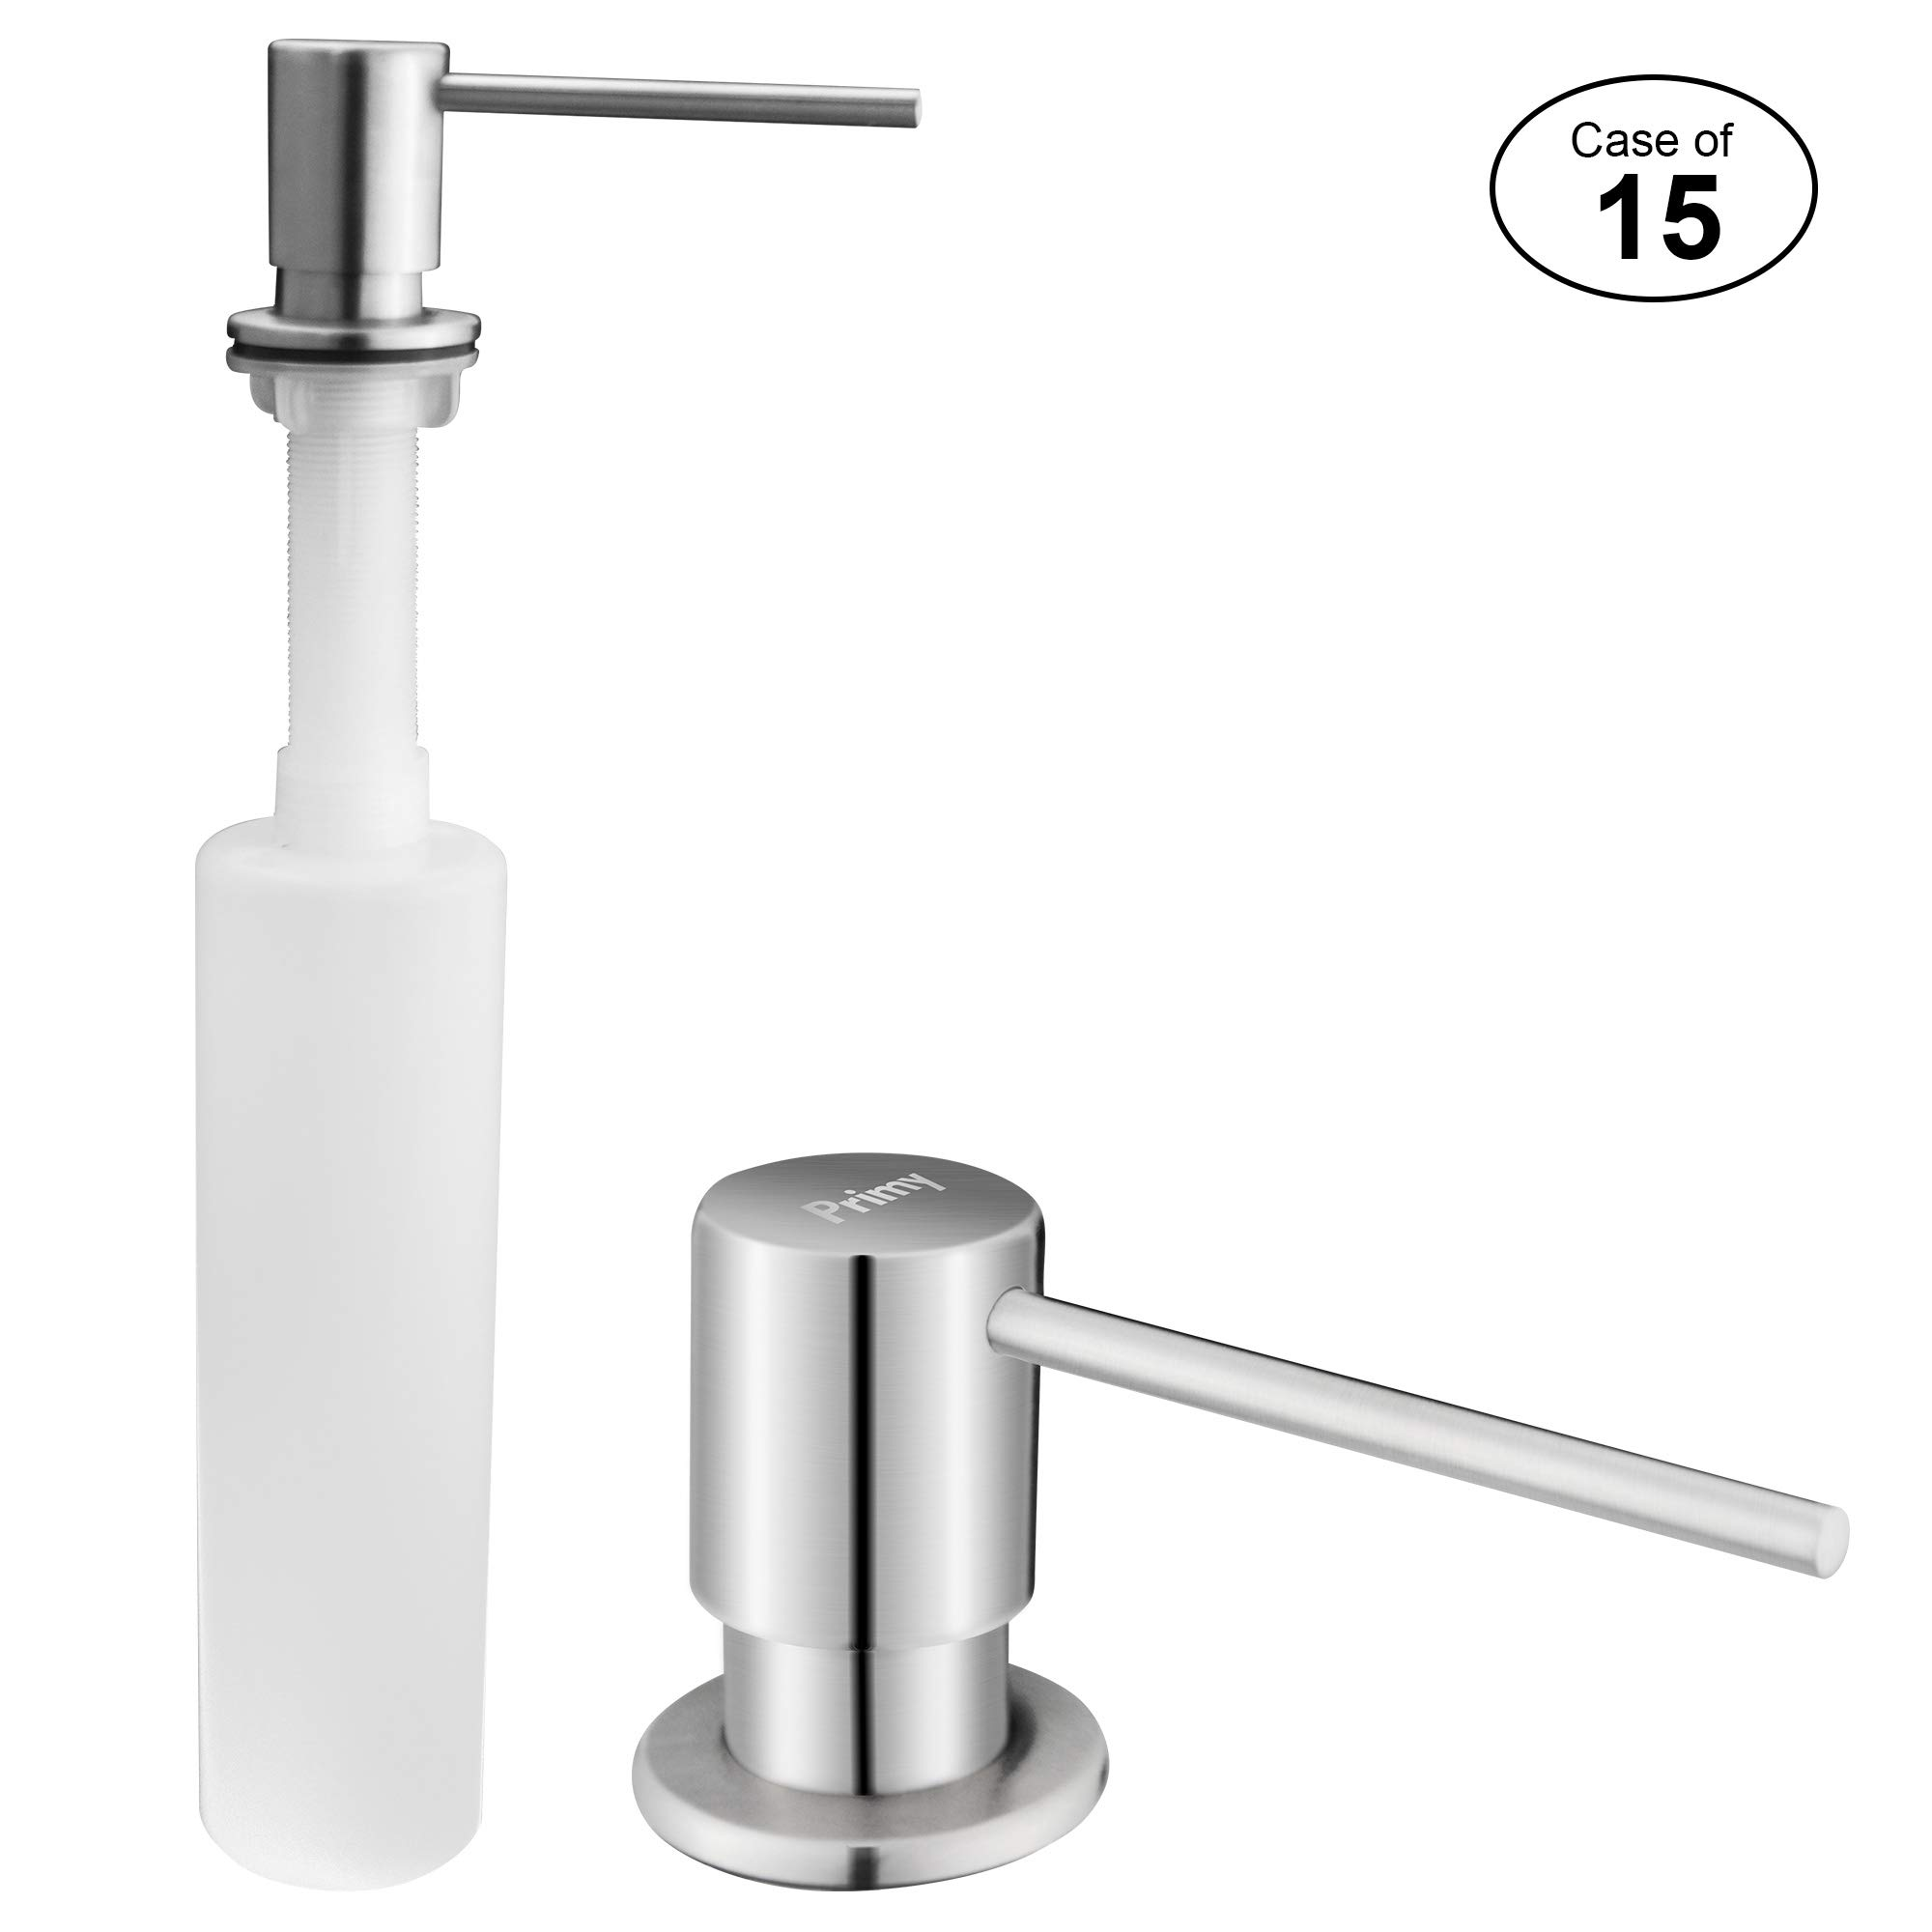 Case of 15, Primy Soap Dispenser for Kitchen Sink Refill From The Top with Large 17 oz Bottle - 3.5 Inch Threaded Tube for Granite Installation -Stainless Steel Dispenser